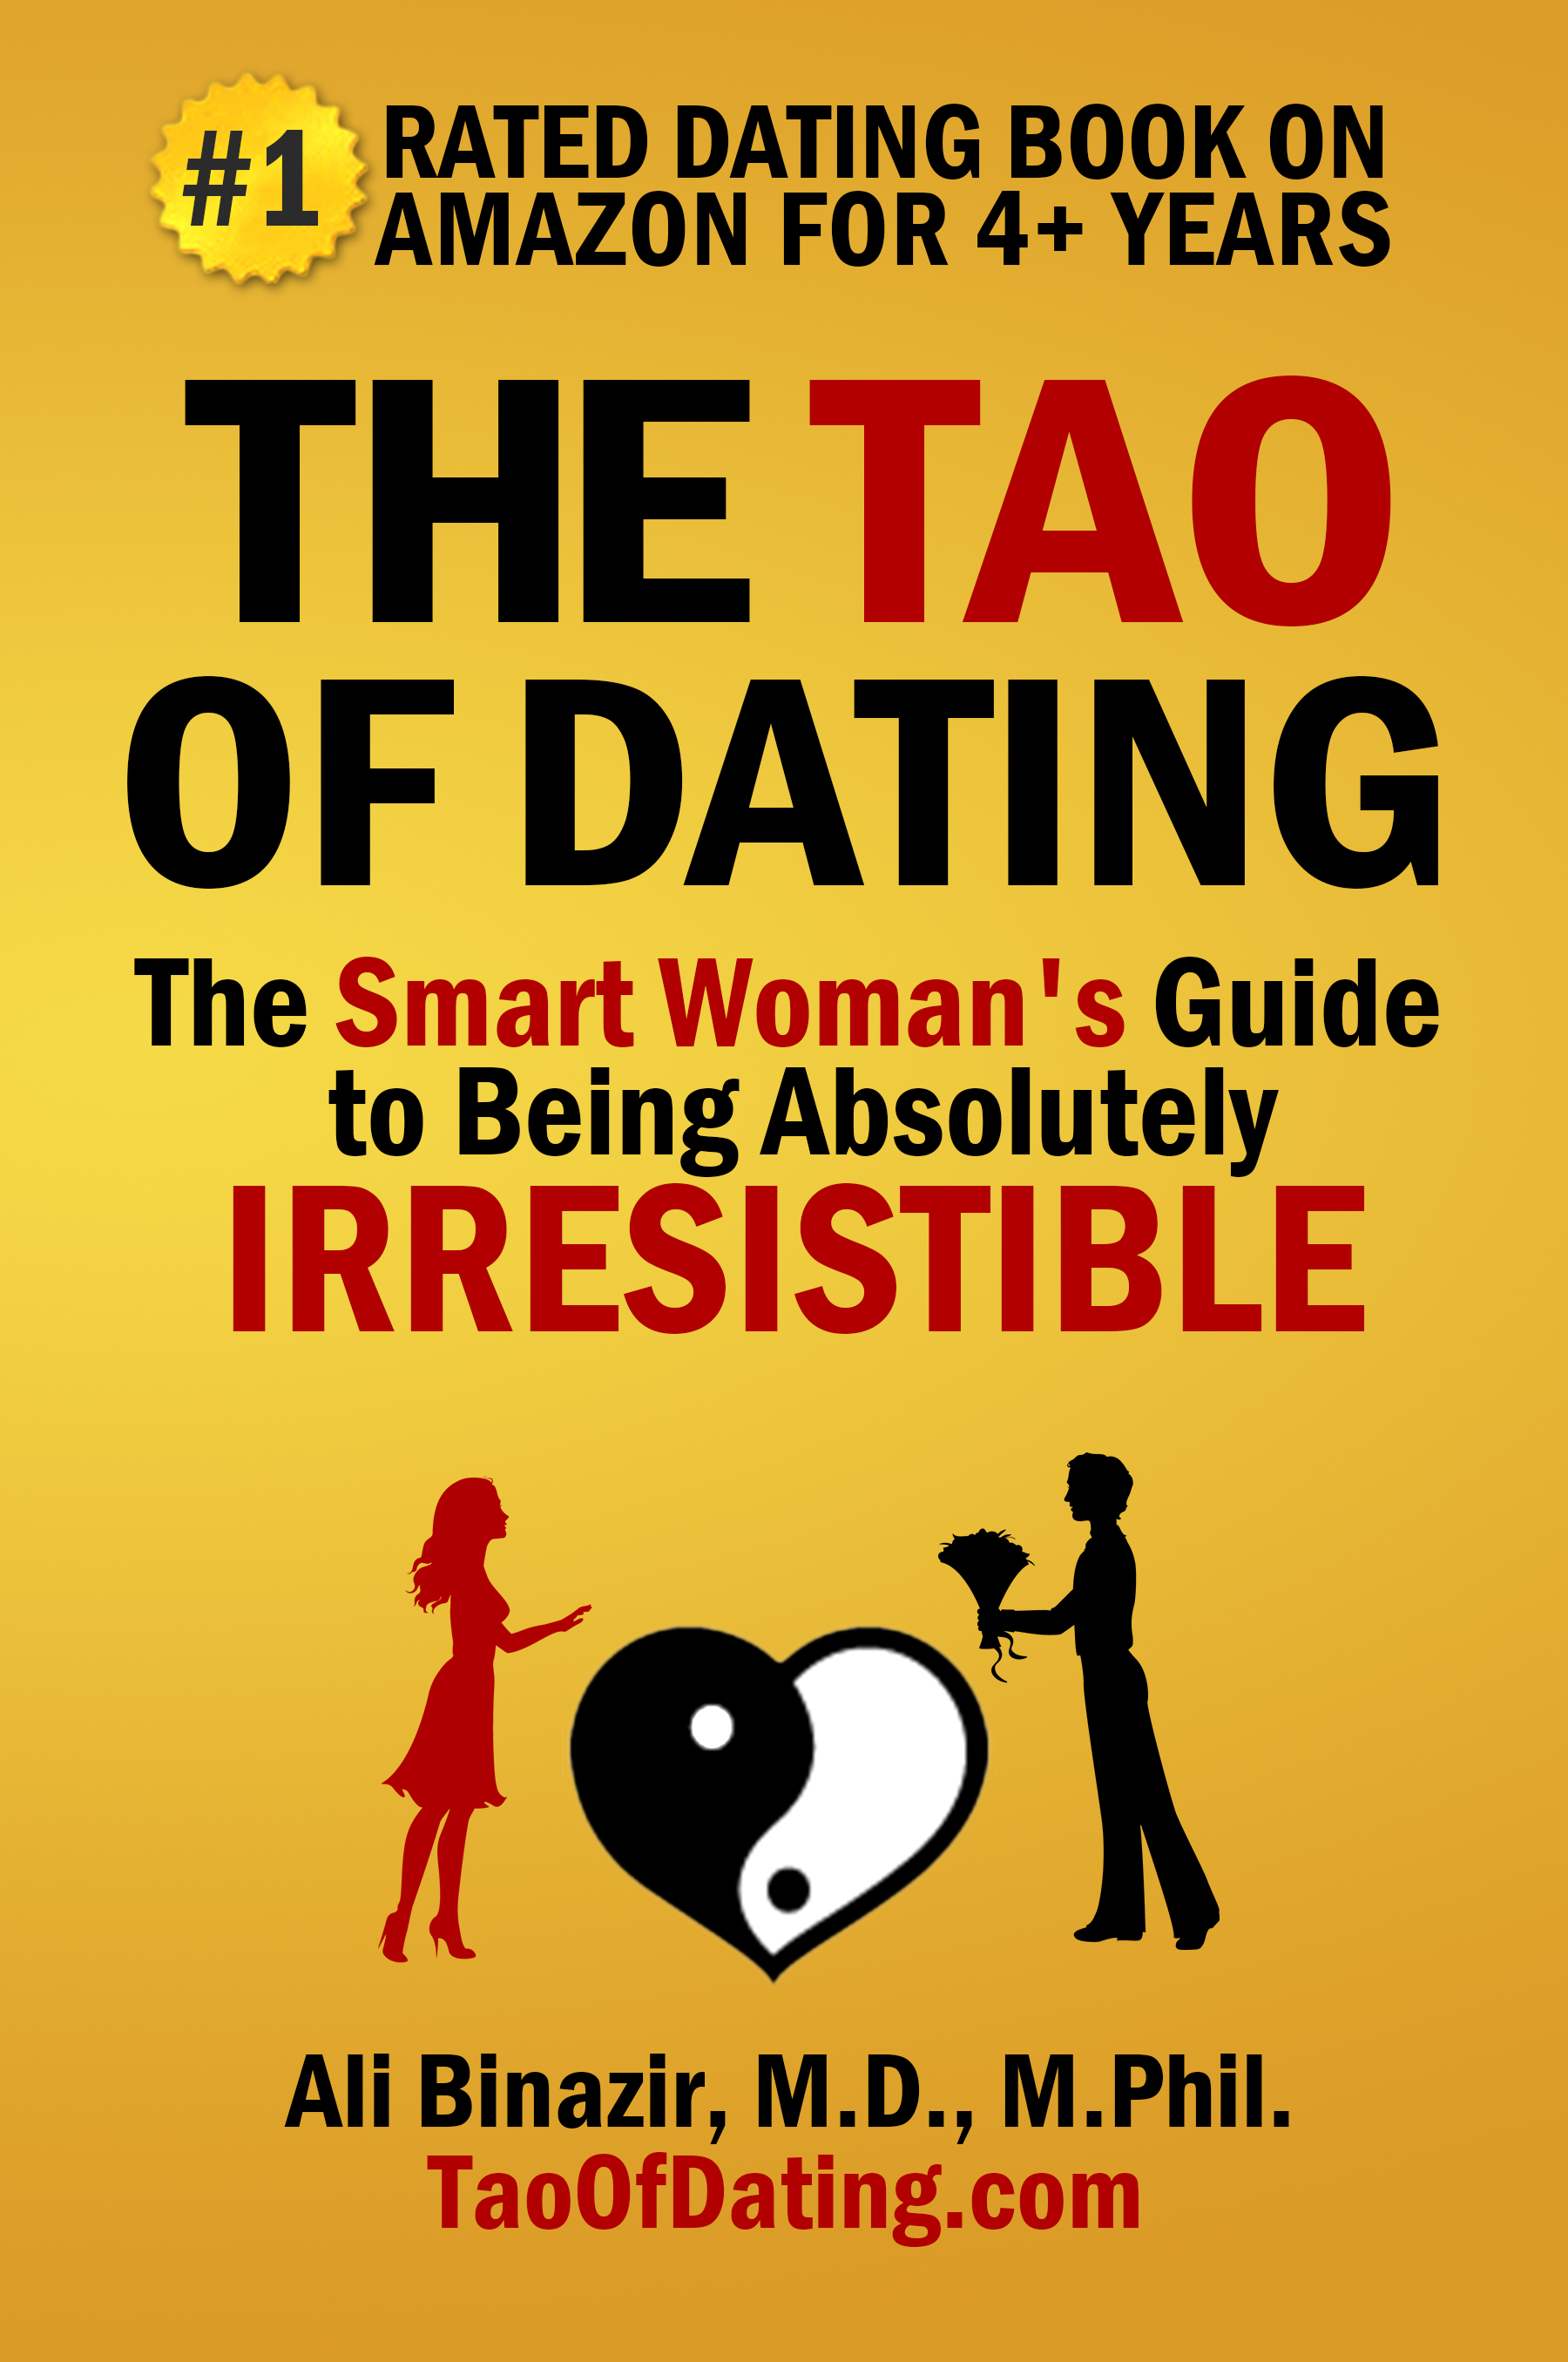 Best selling books on dating